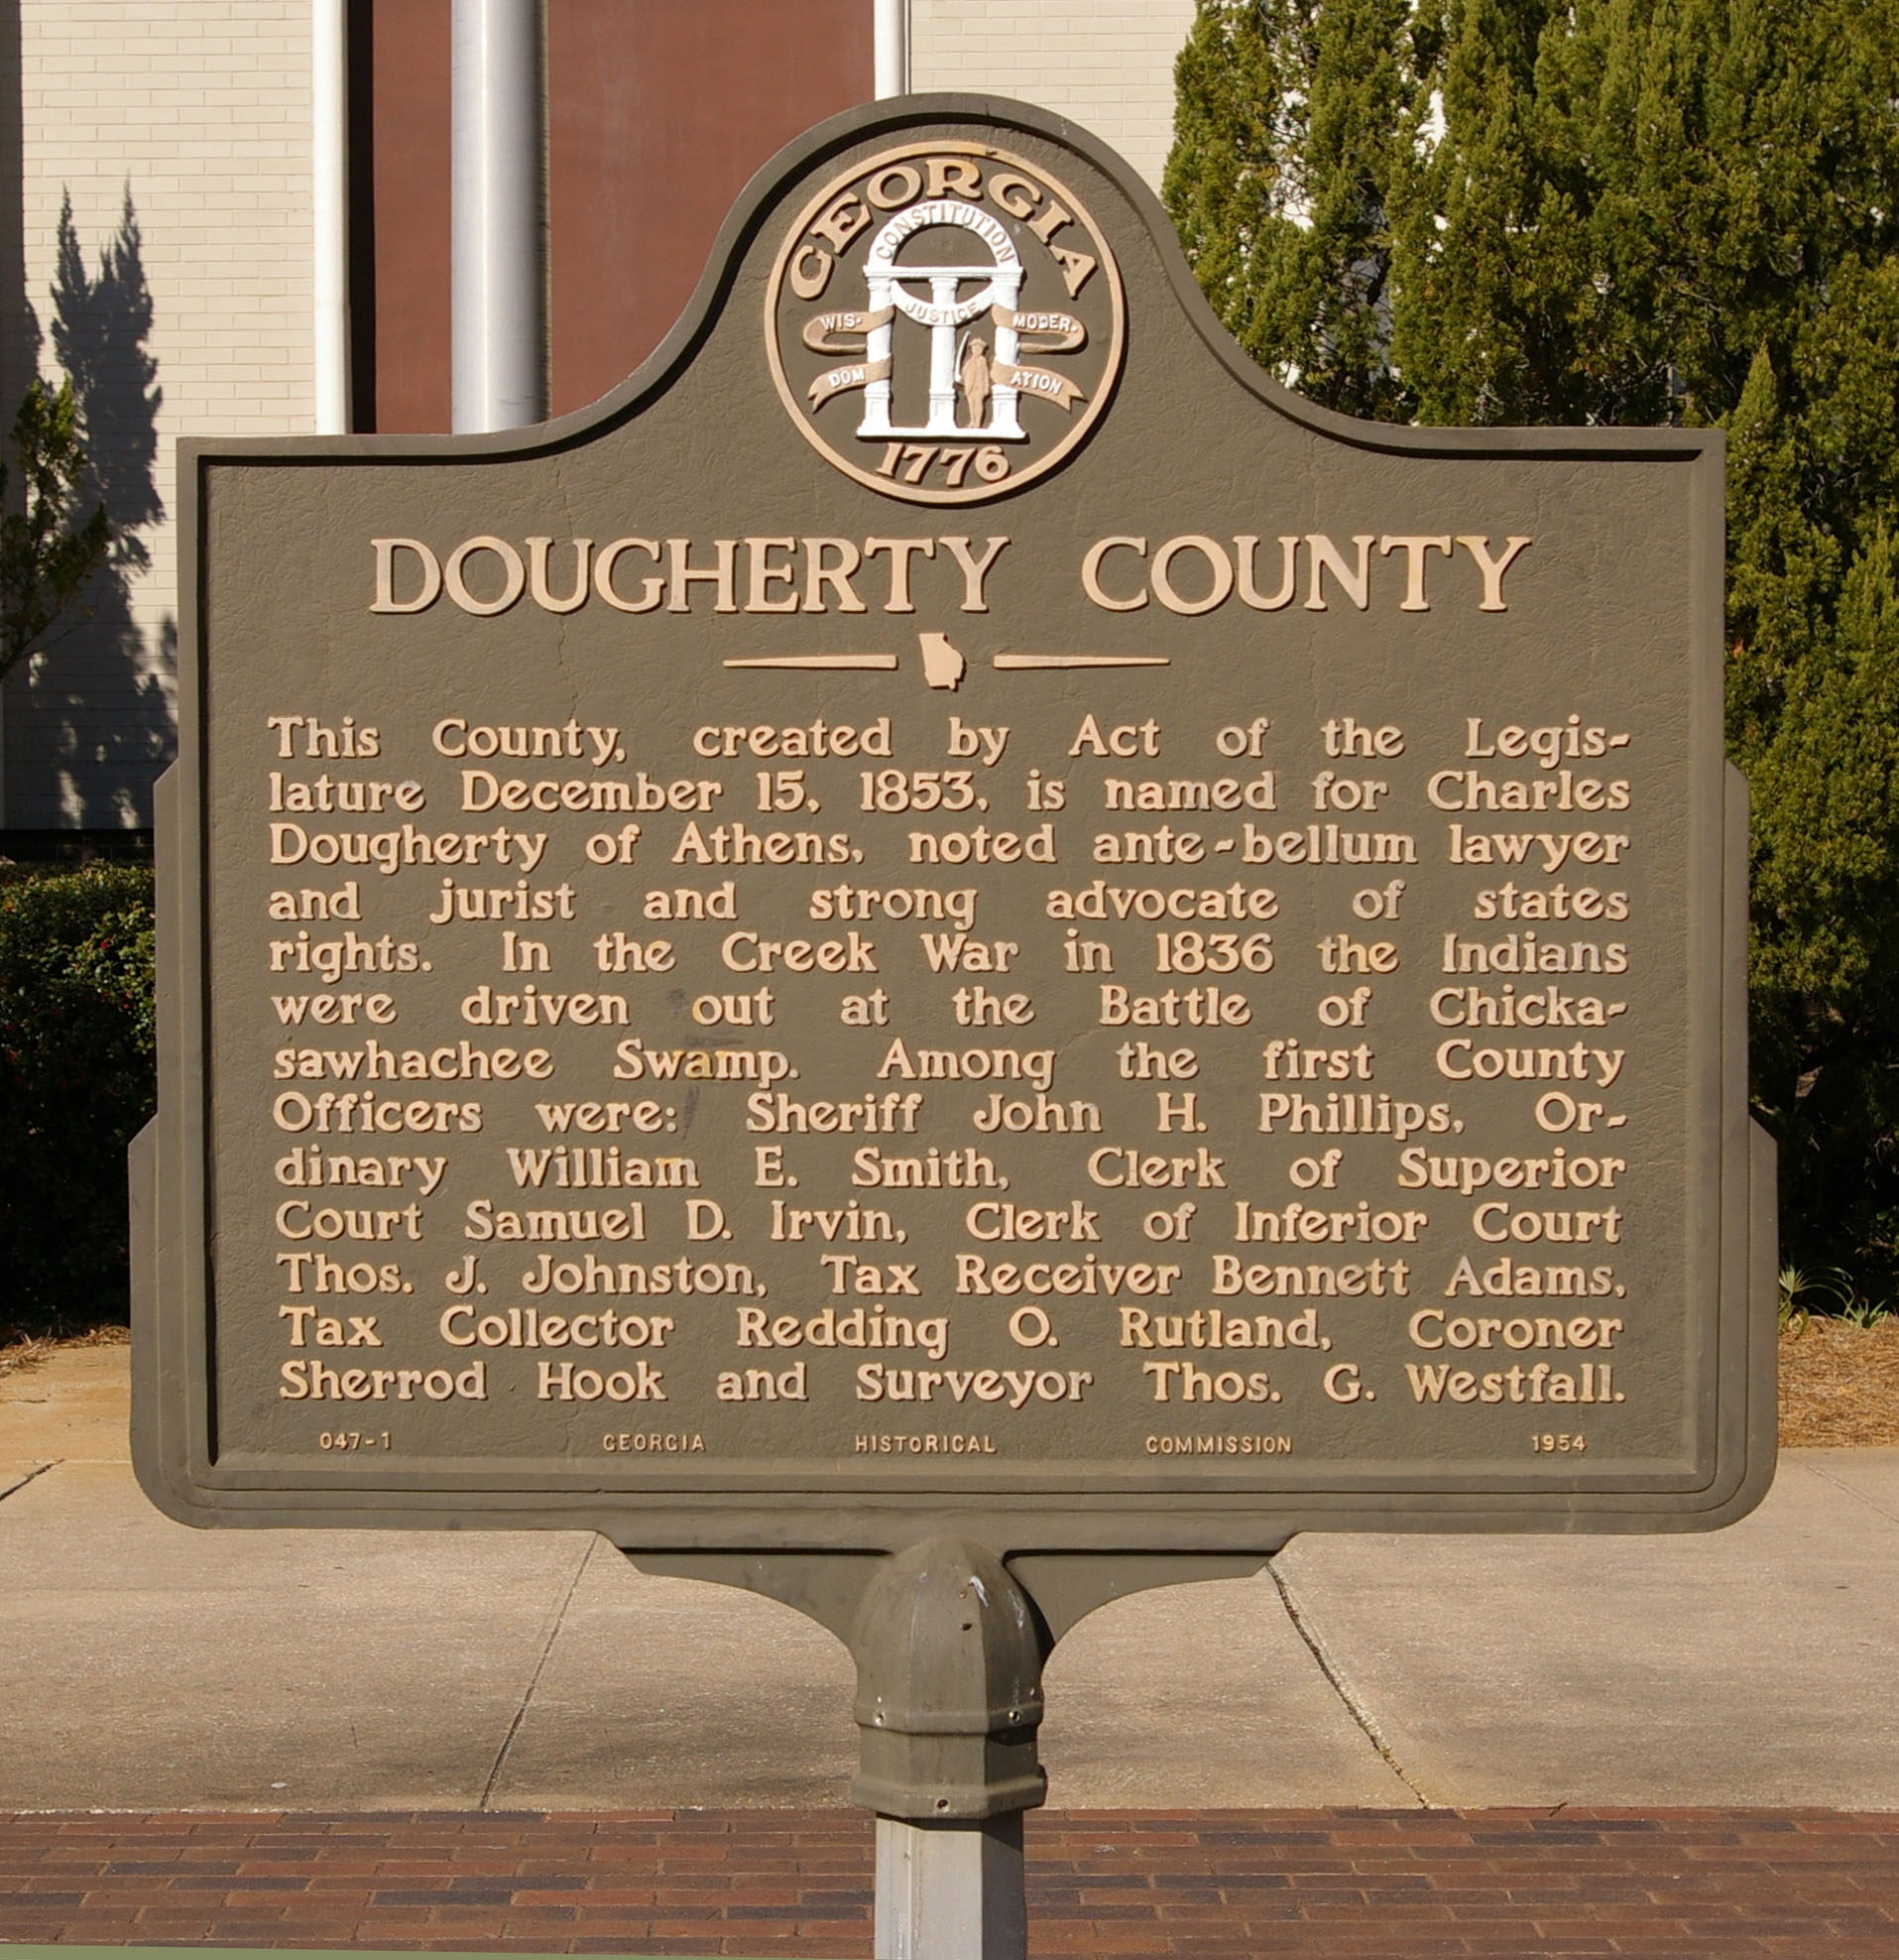 dougherty county singles Homes for sale in dougherty county, ga have a median listing price of $106,000 and a price per square foot of $59 there are 555 active homes for sale in dougherty county, georgia, which spend an.